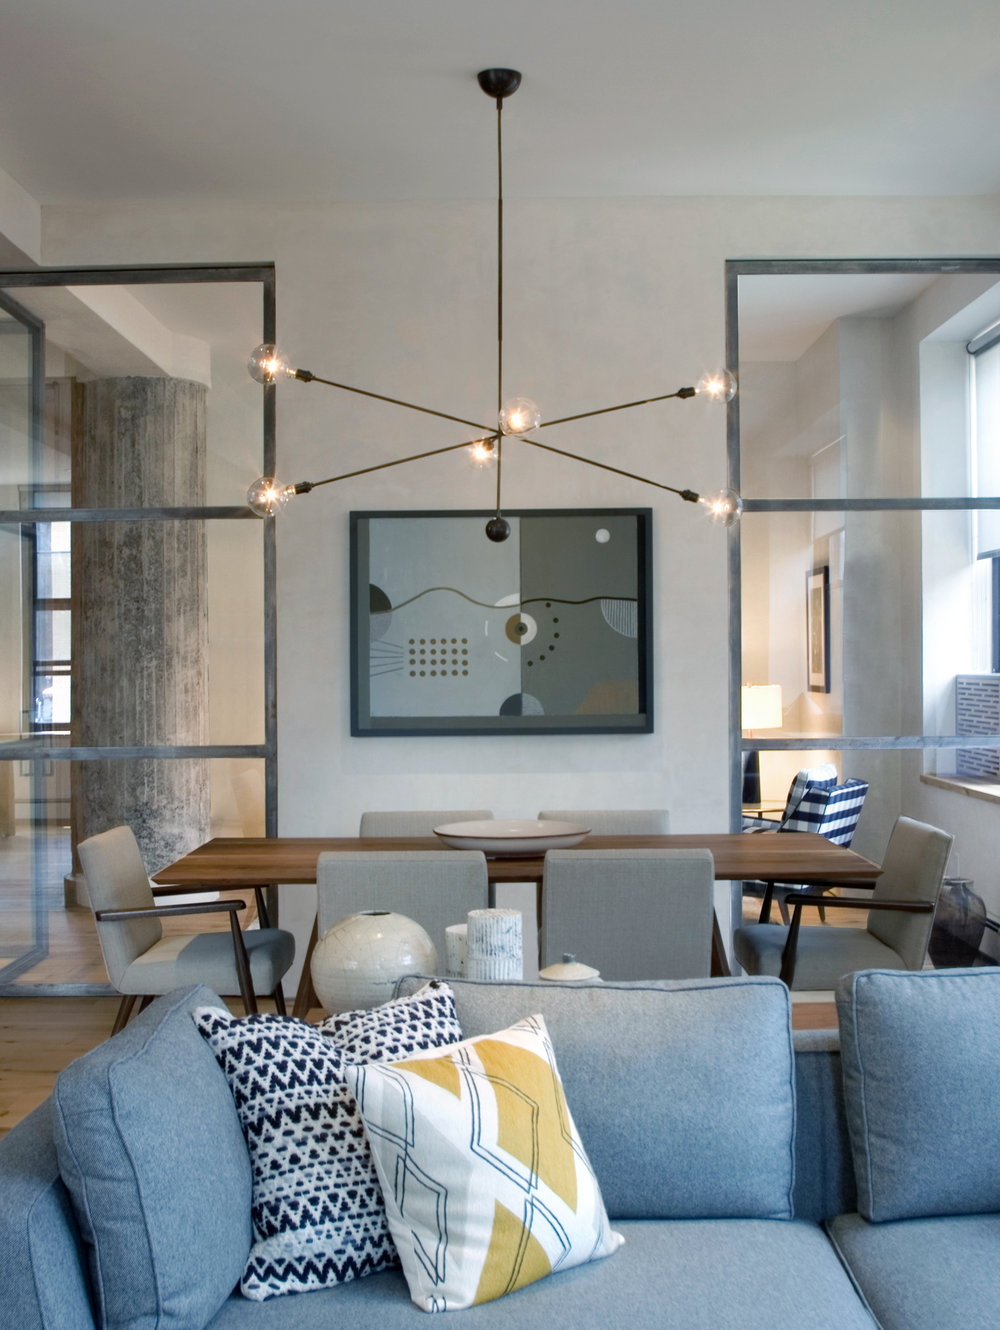 SoHo loft contemporary living room and dining room interior design by Jones Rowan Studio.